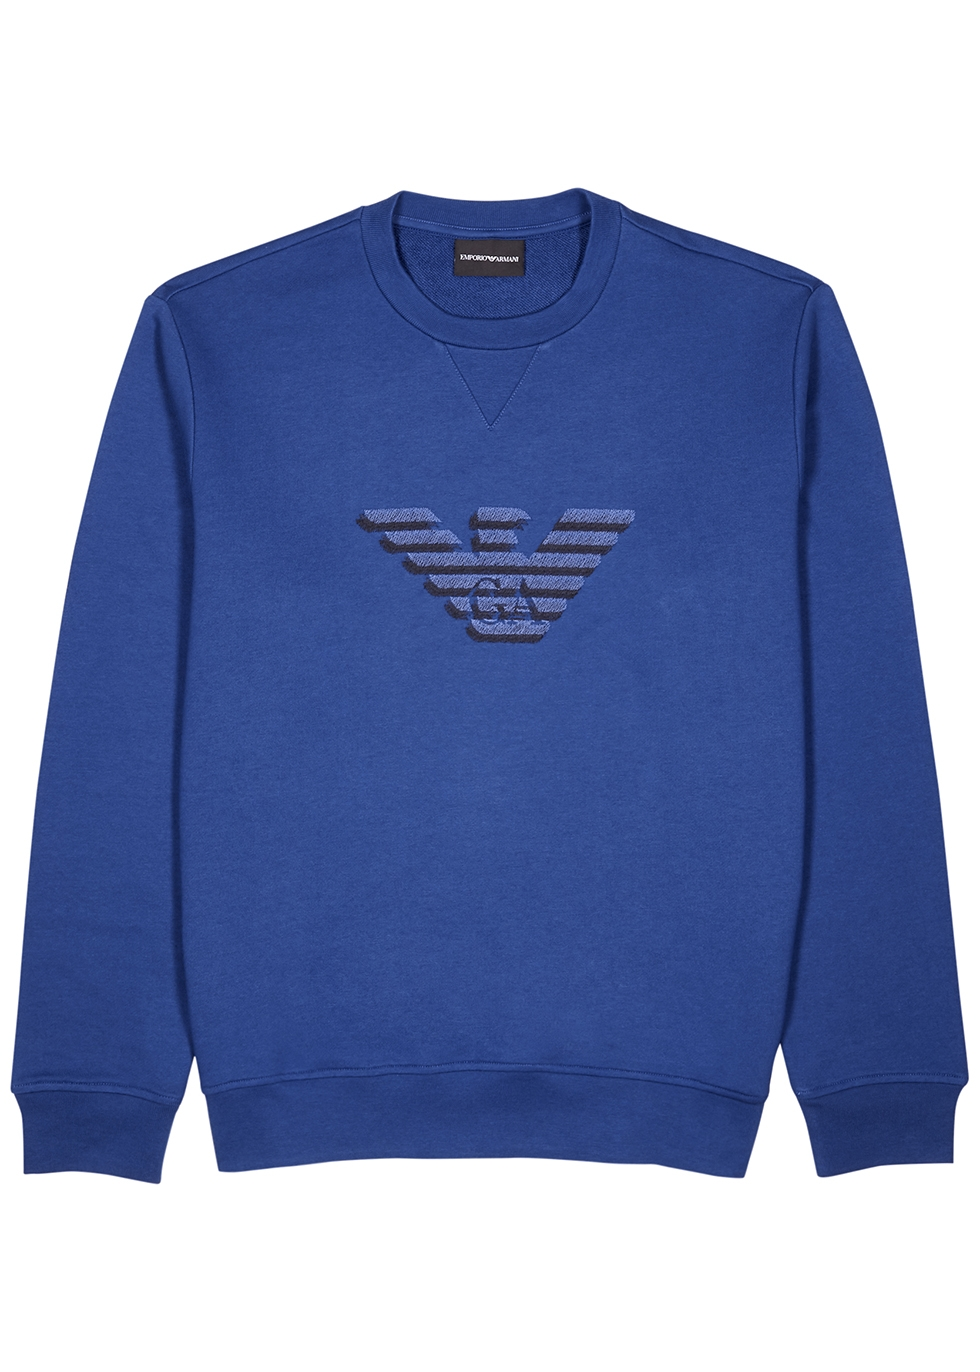 Blue logo-embroidered jersey sweatshirt